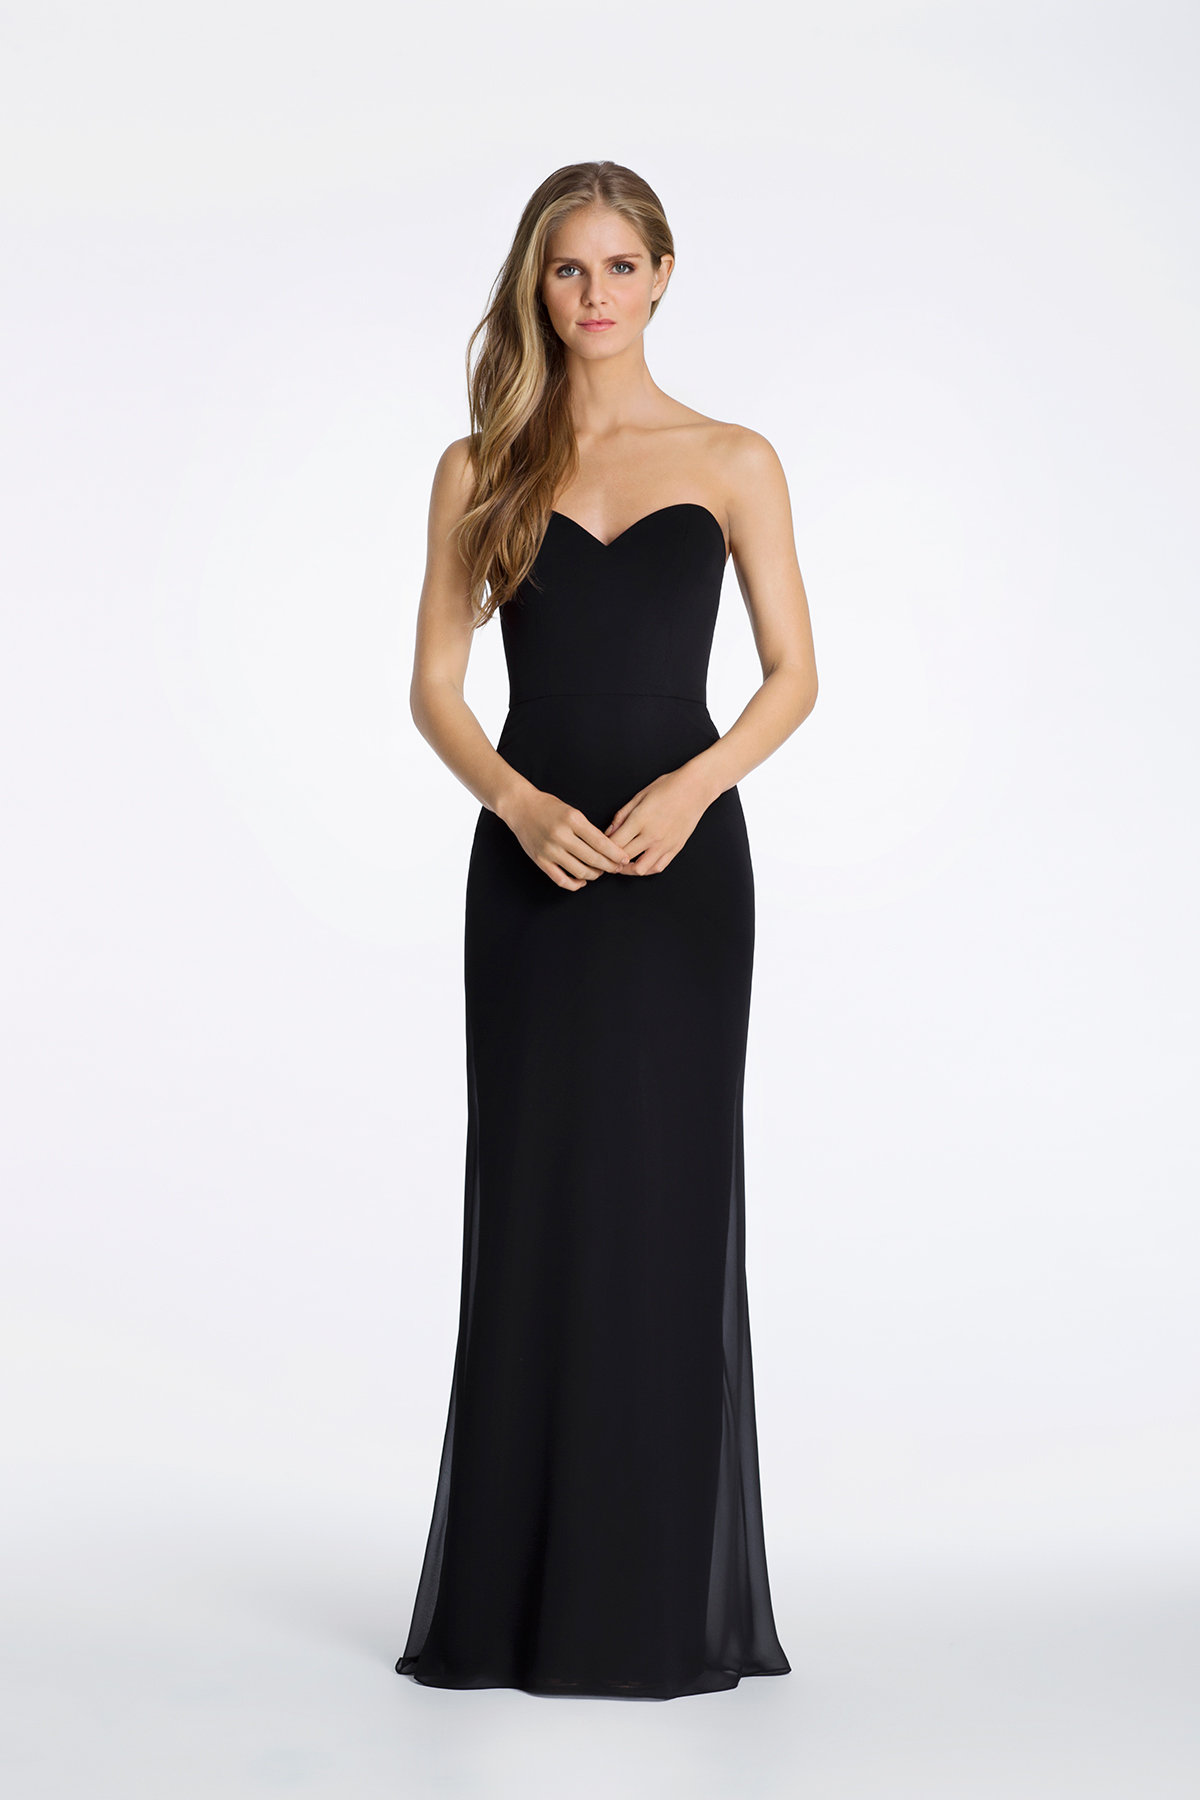 Simple a line gown with sweetheart neckline by Hayley Paige Occasions style 5621